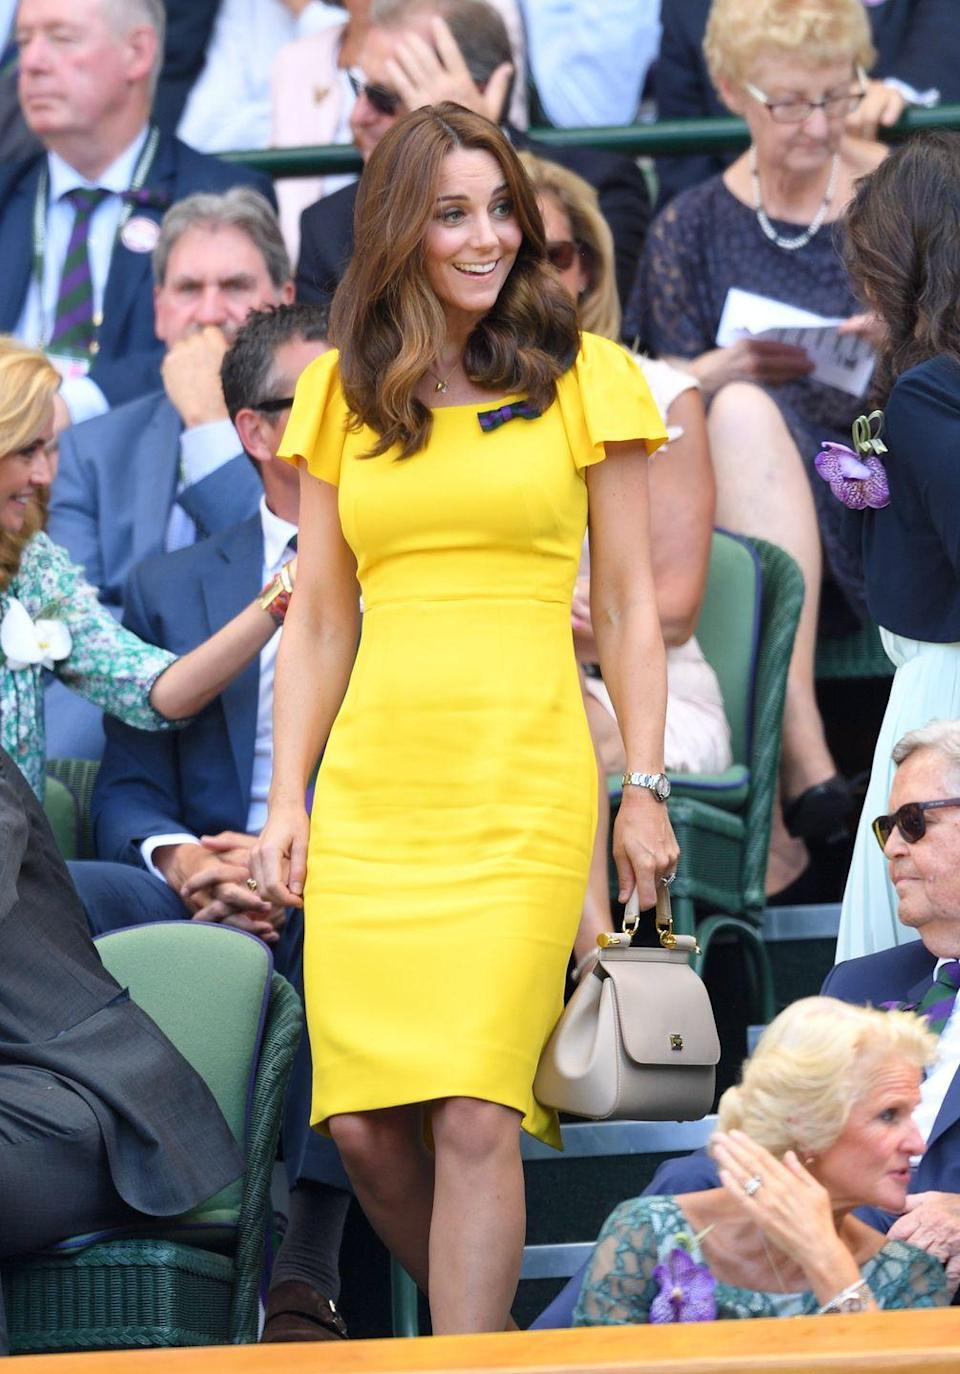 """<p>Kate wore this sunny yellow dress to Wimbledon in 2018. The Duchess of Cambridge <a href=""""https://www.cosmopolitan.com/style-beauty/fashion/a22150588/kate-middleton-meghan-markle-yellow/"""" rel=""""nofollow noopener"""" target=""""_blank"""" data-ylk=""""slk:has a long history"""" class=""""link rapid-noclick-resp"""">has a long history</a> of wearing this color, and for good reason—it looks s-t-u-n-n-i-n-g on her.</p>"""